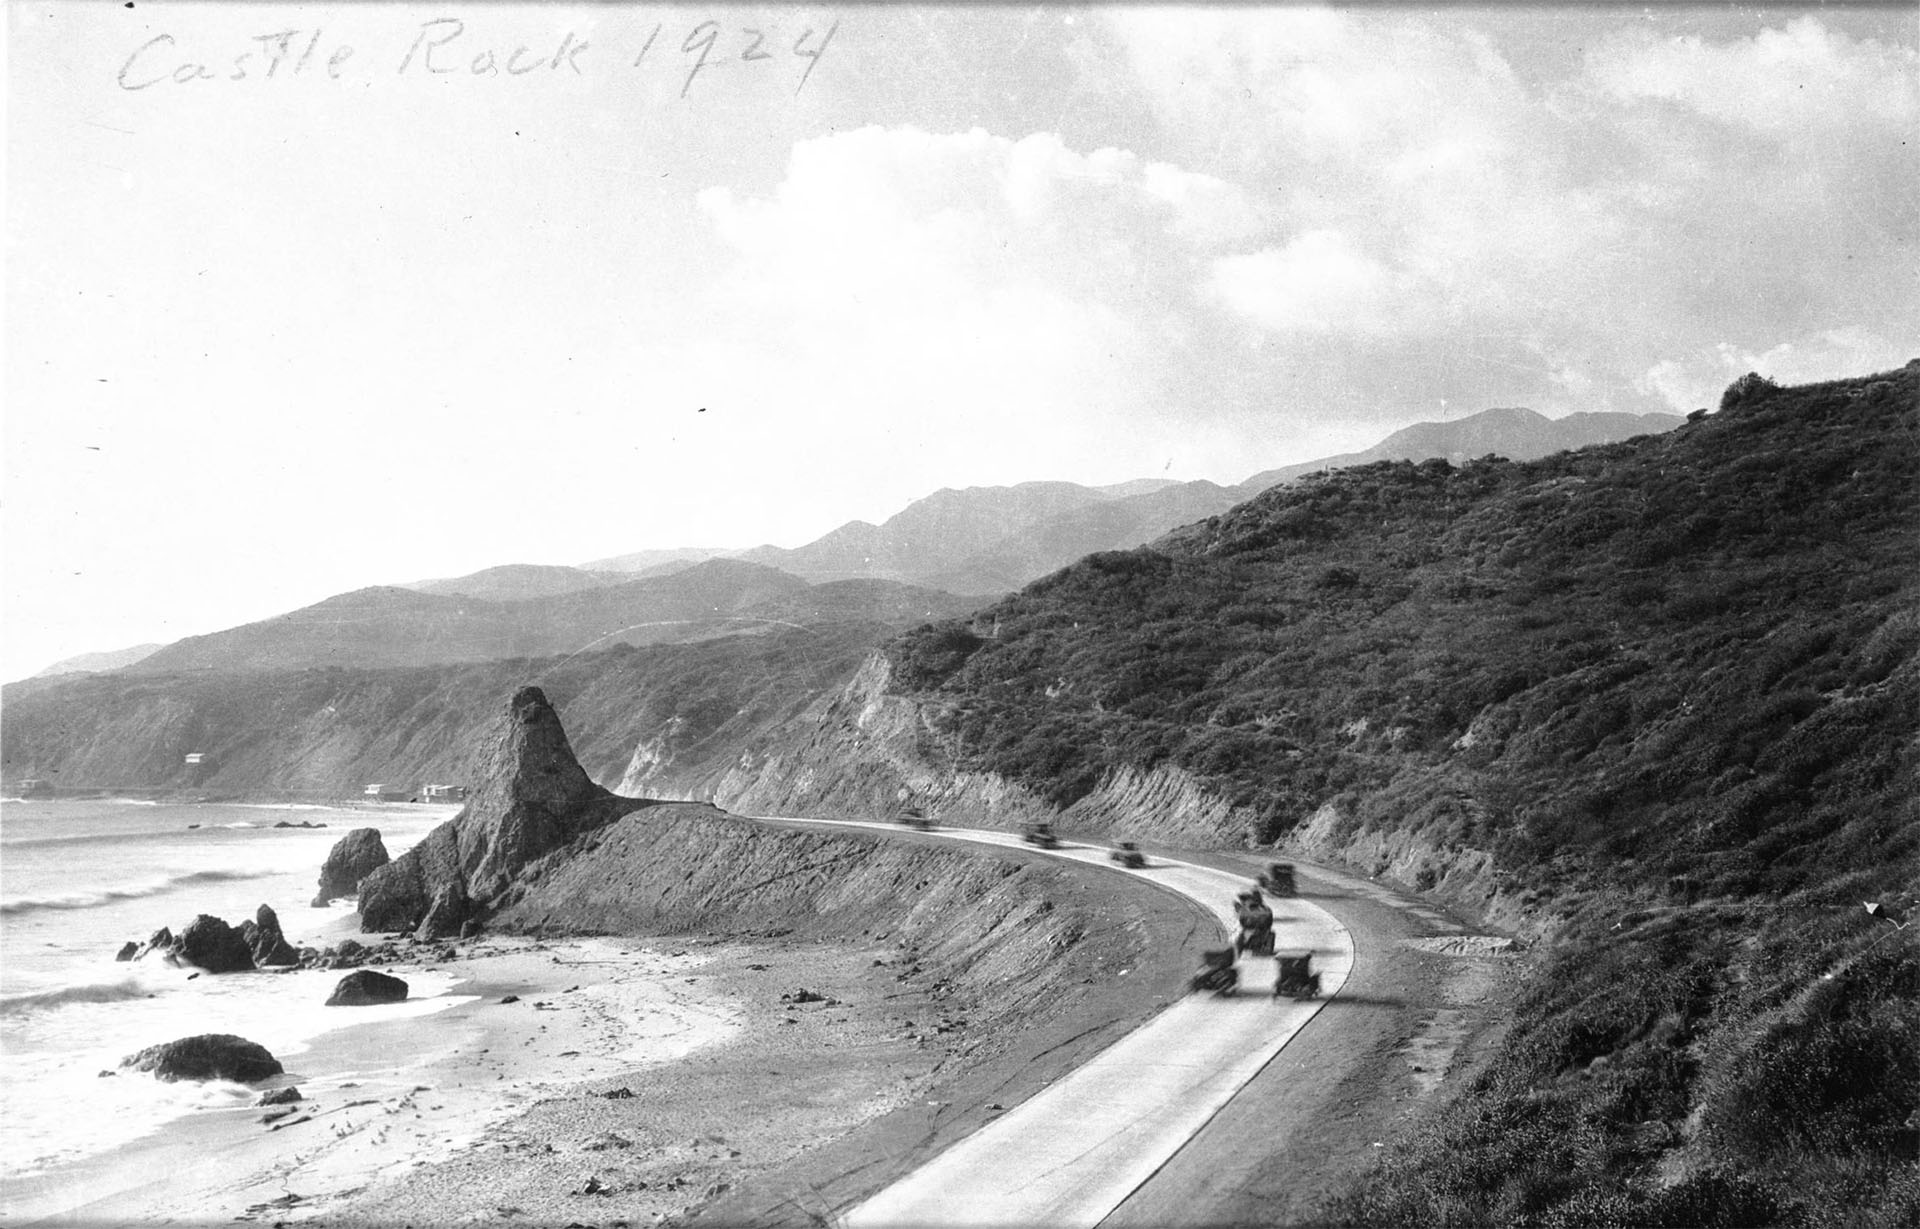 Castle Rock and the Roosevelt Highway in 1924